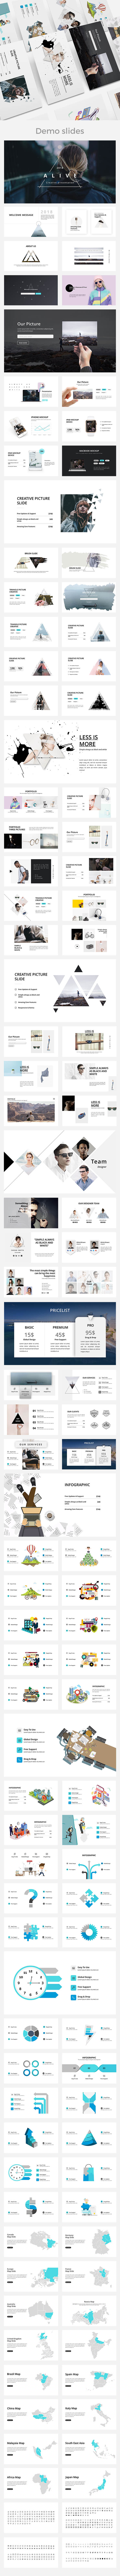 Alive Creative Powerpoint Template - Creative PowerPoint Templates